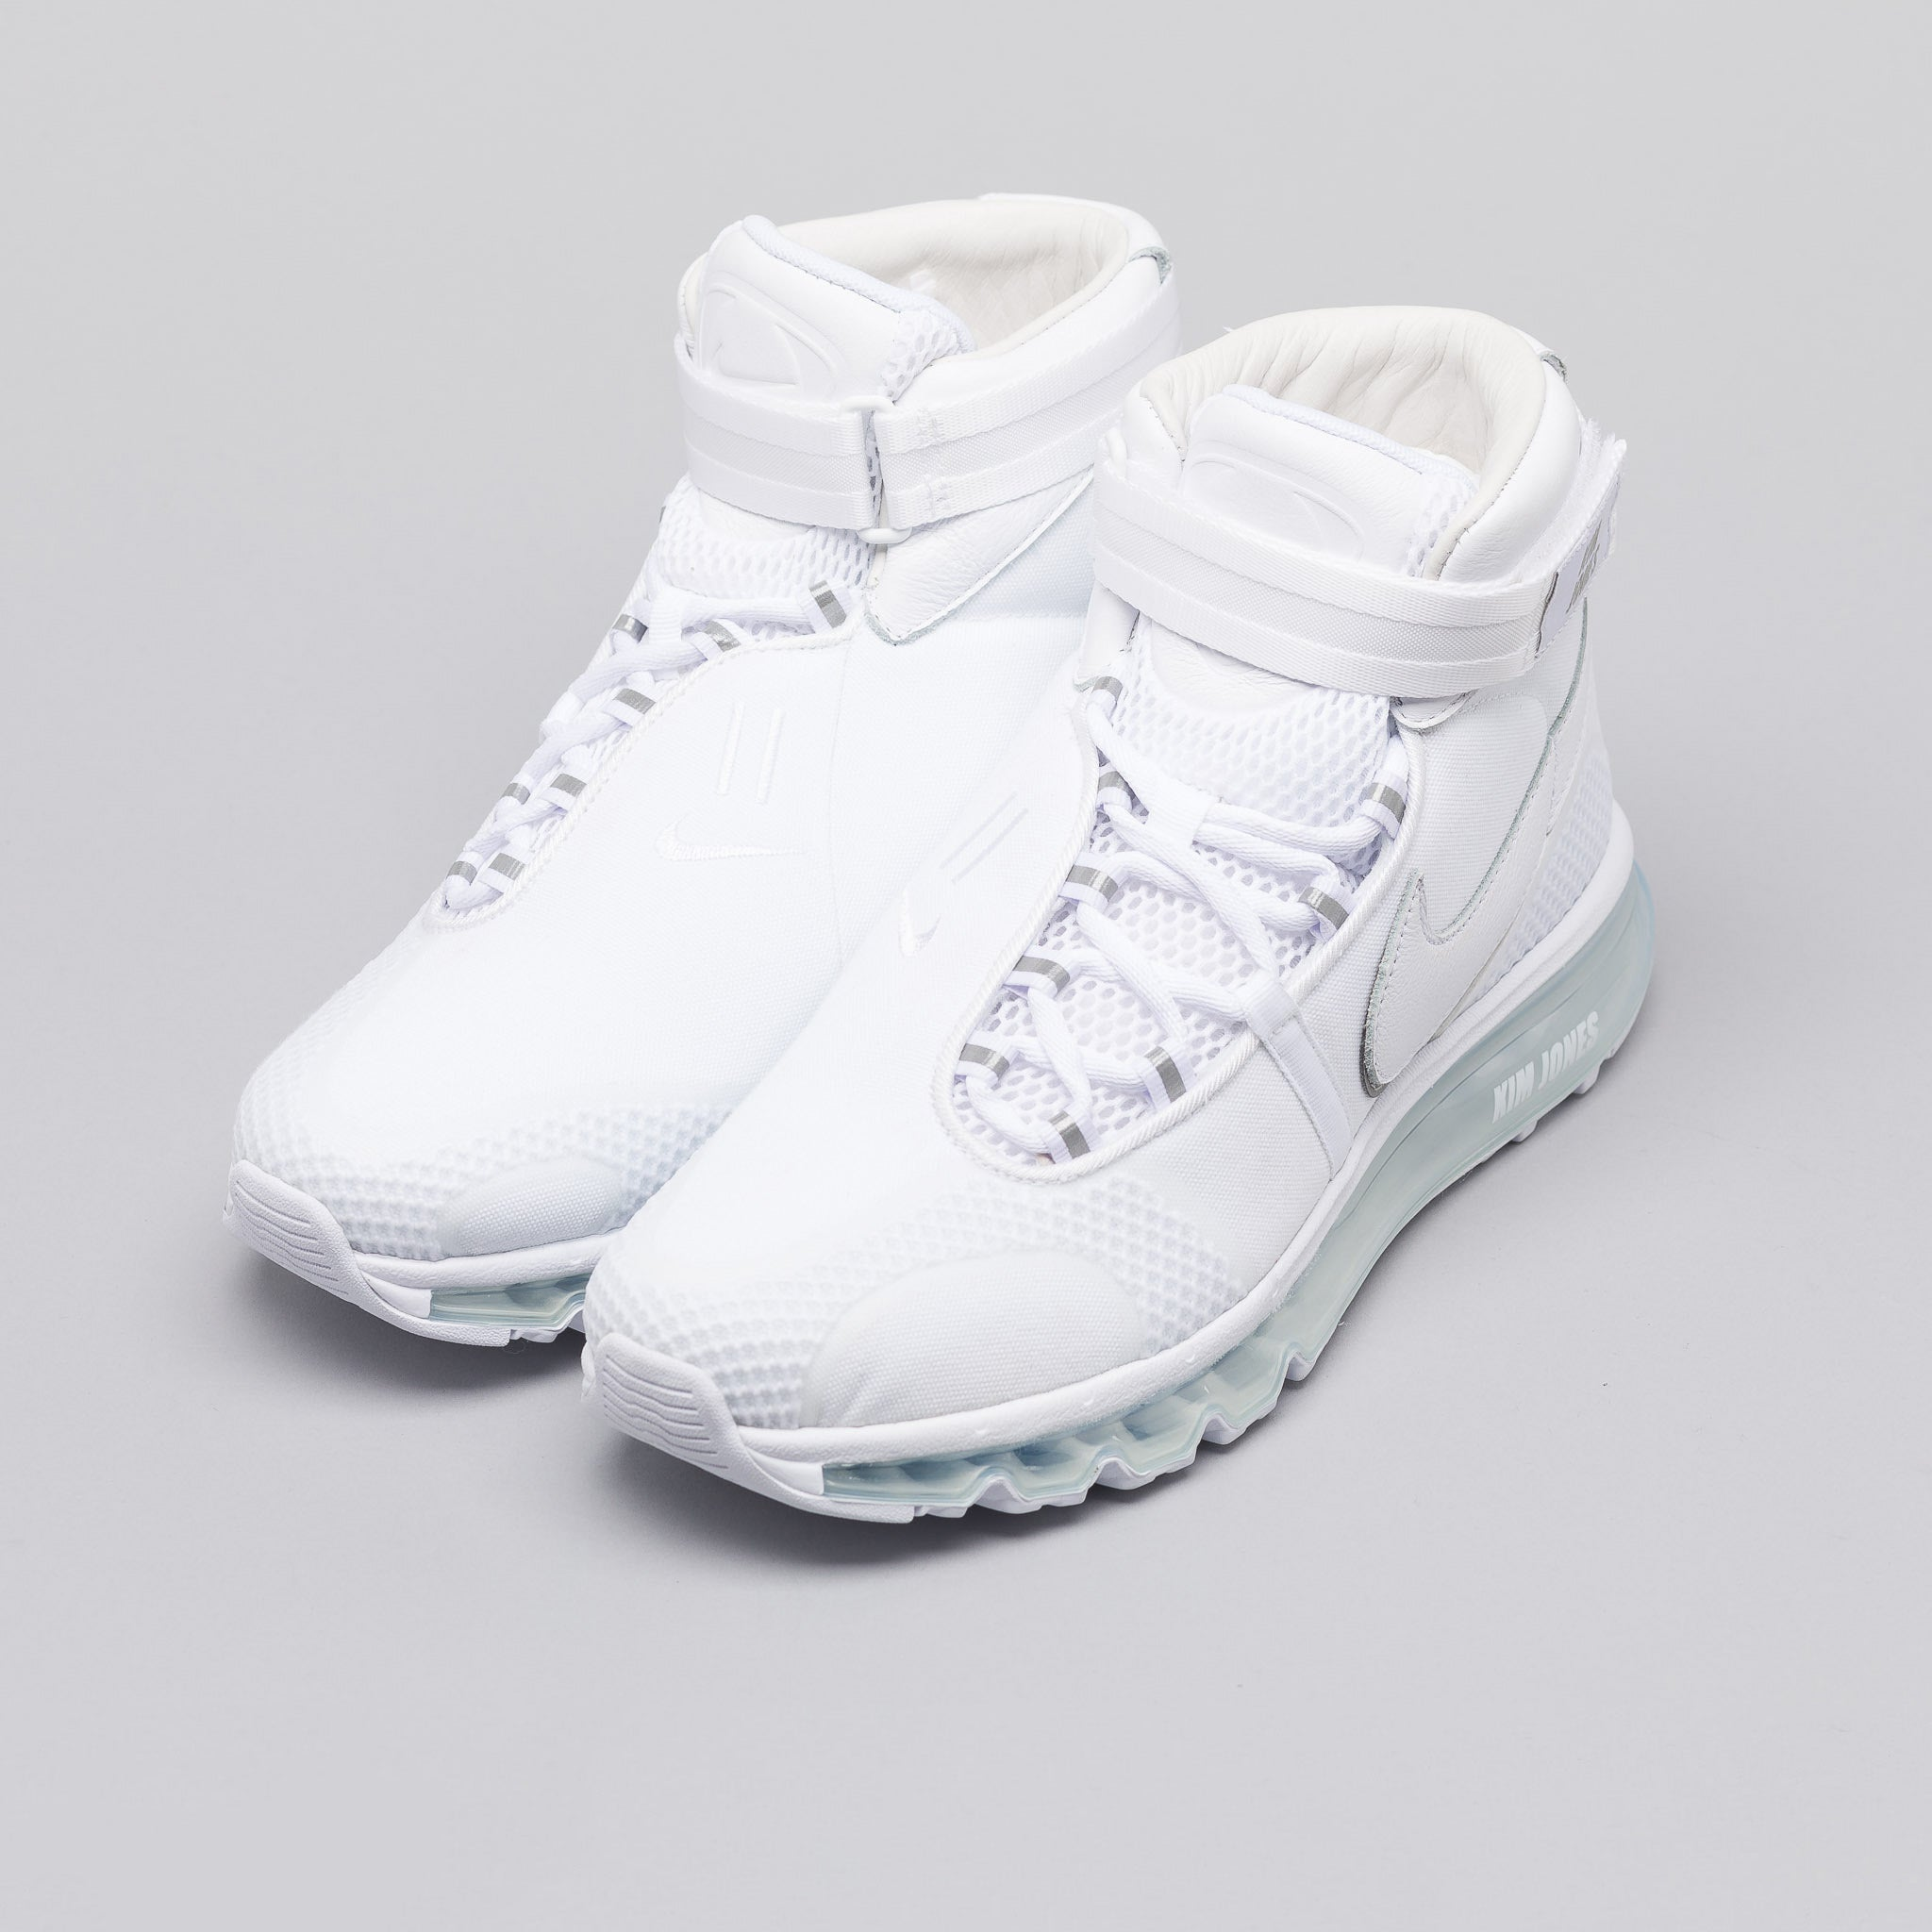 x Kim Jones Air Max 360 Hi in White